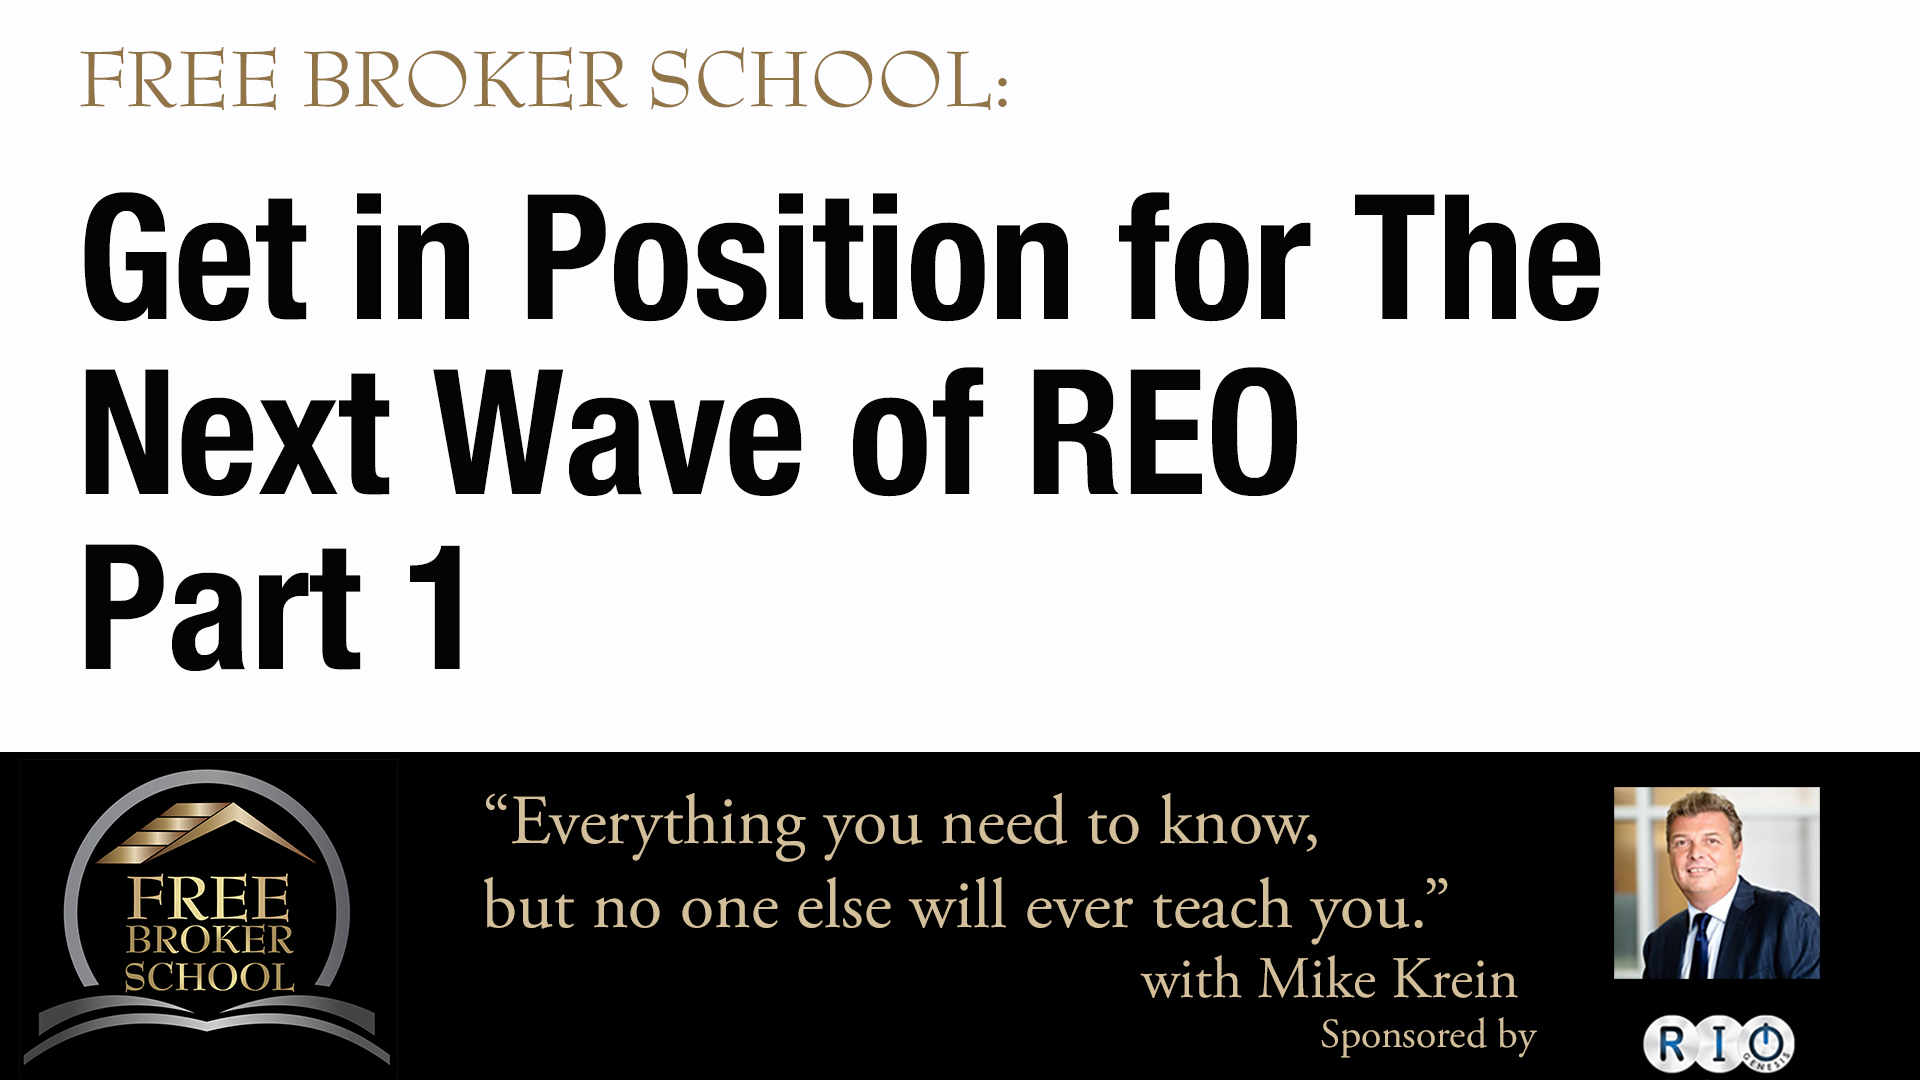 Free Broker School: Get in Position for the Next Wave of REO Part 1